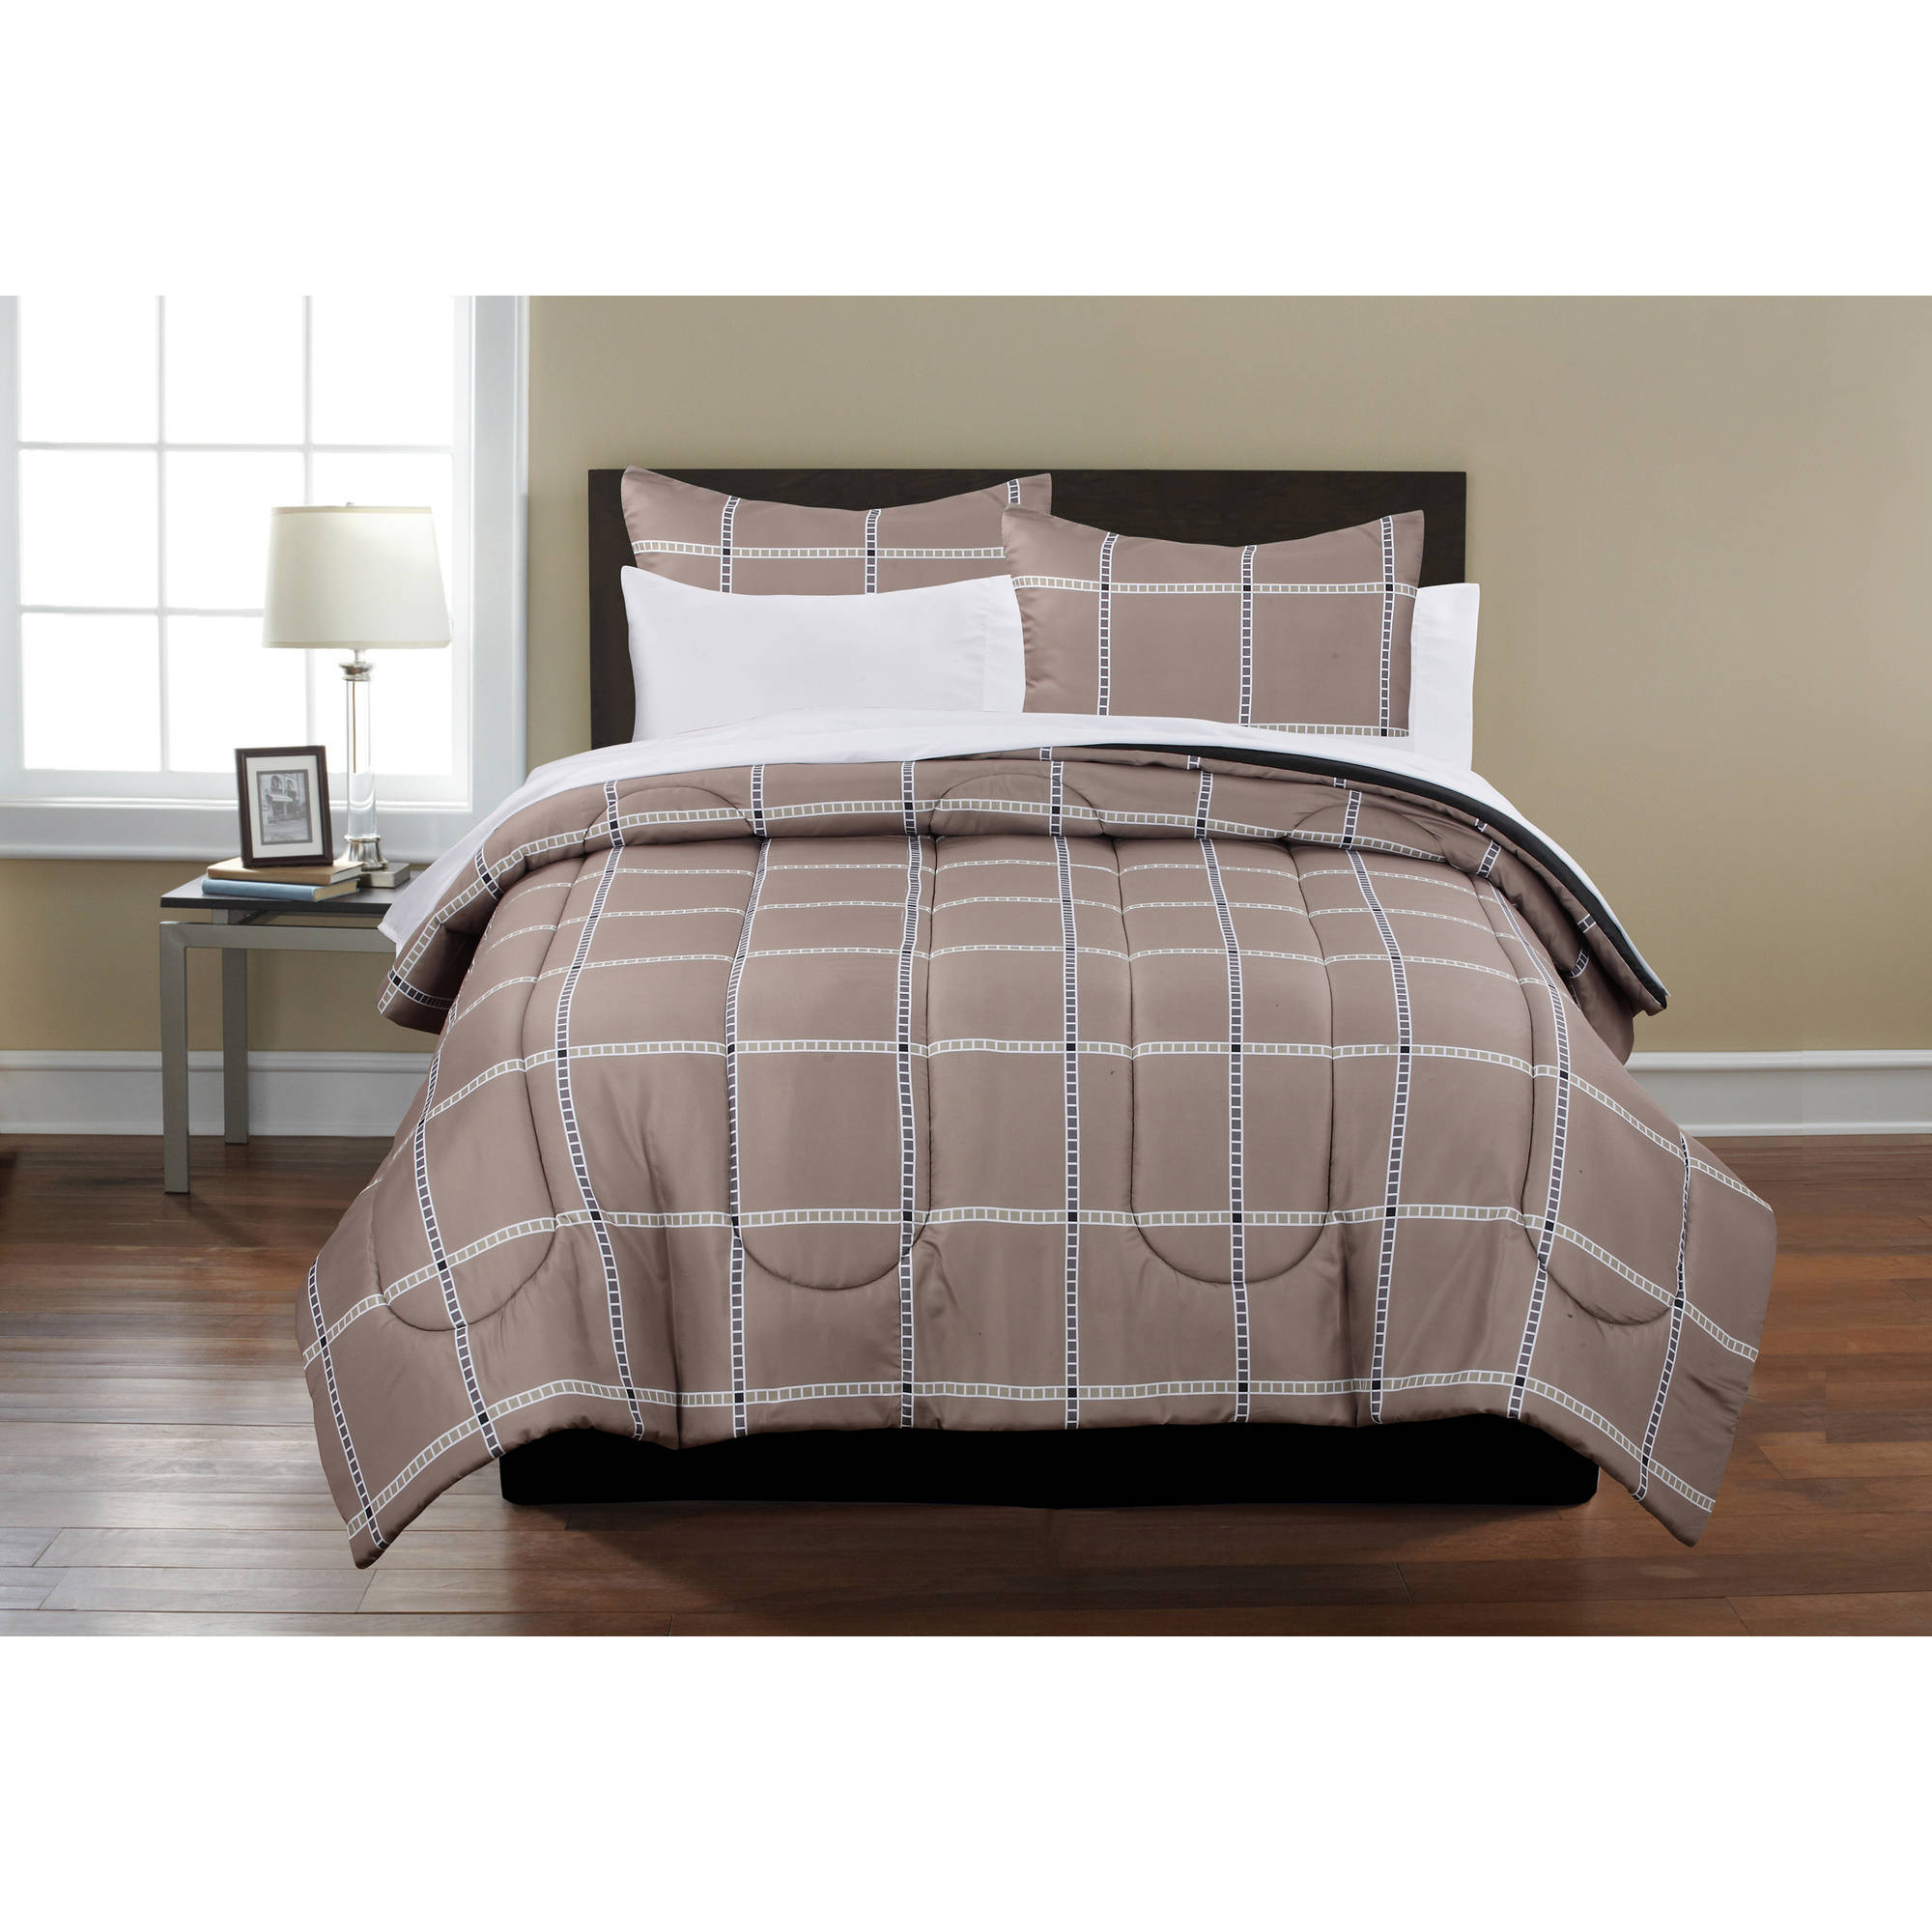 Mainstays Beige Bed in a Bag Complete Bedding Set